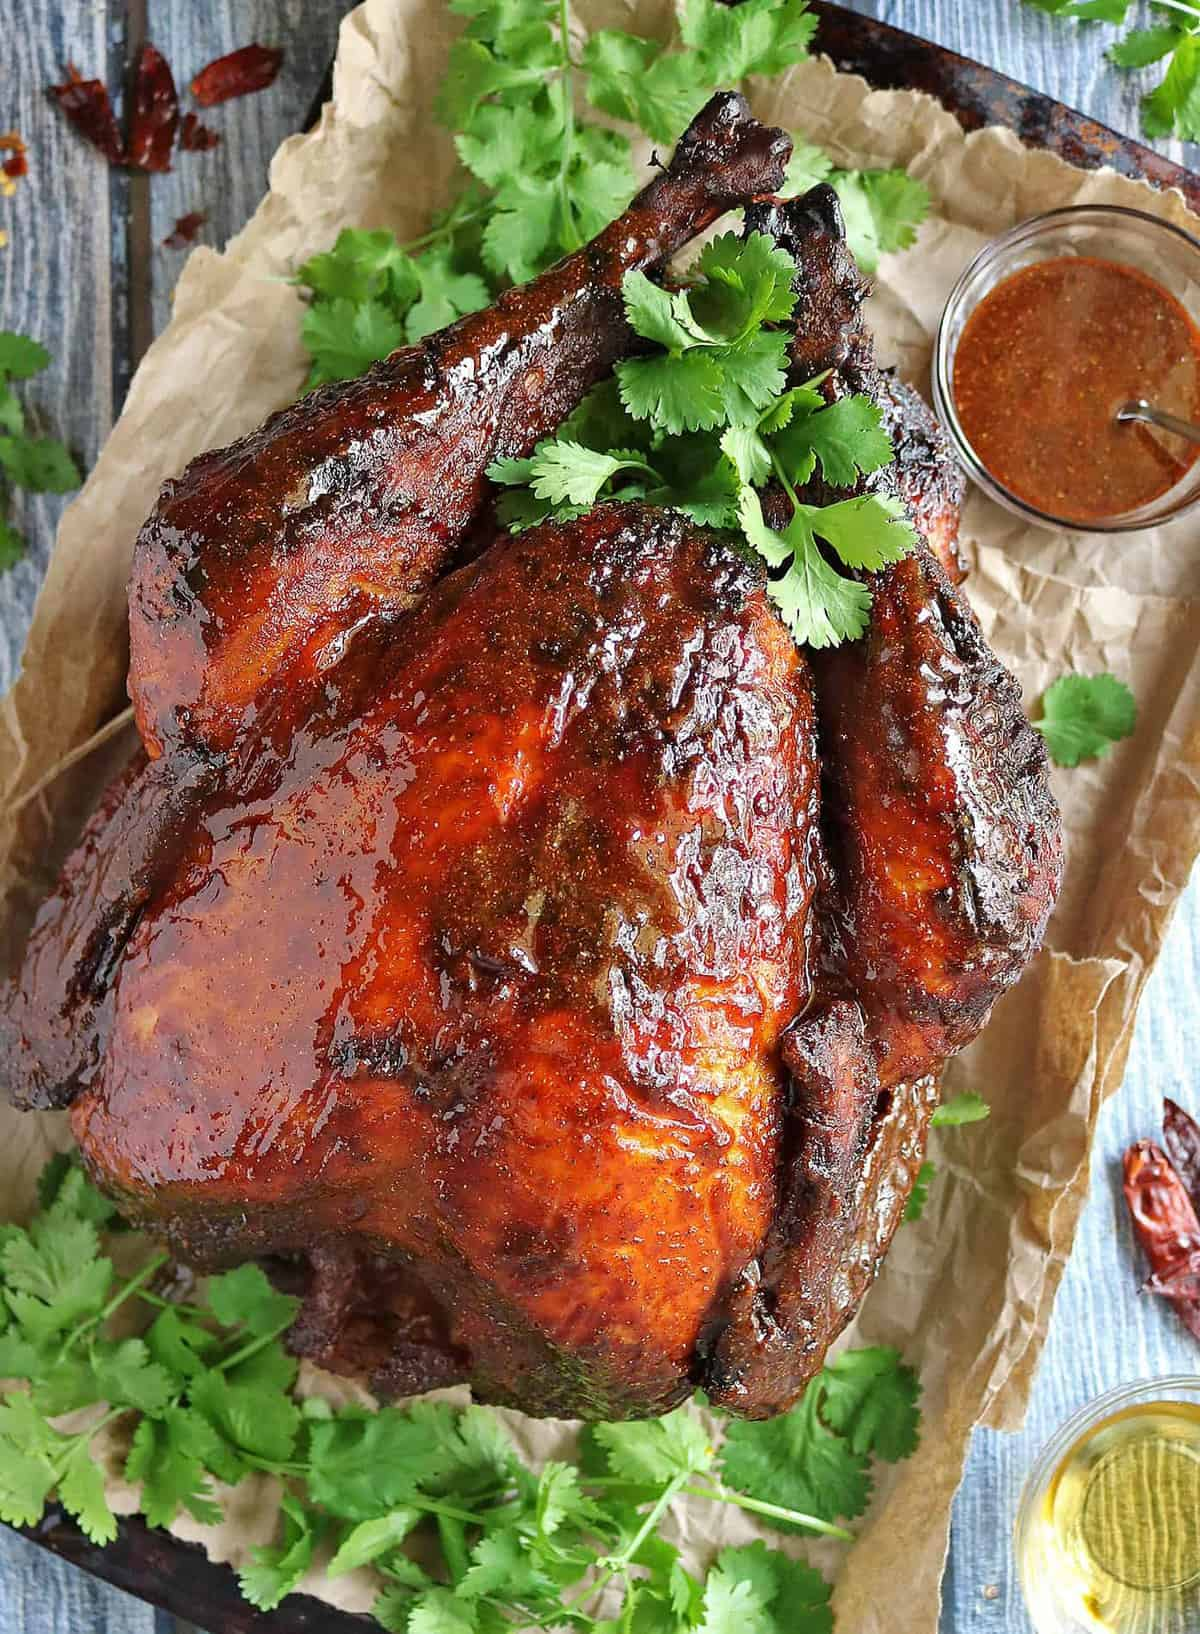 A baking sheet covered with a brown paper bag holding a large honey glazed cooked turkey.